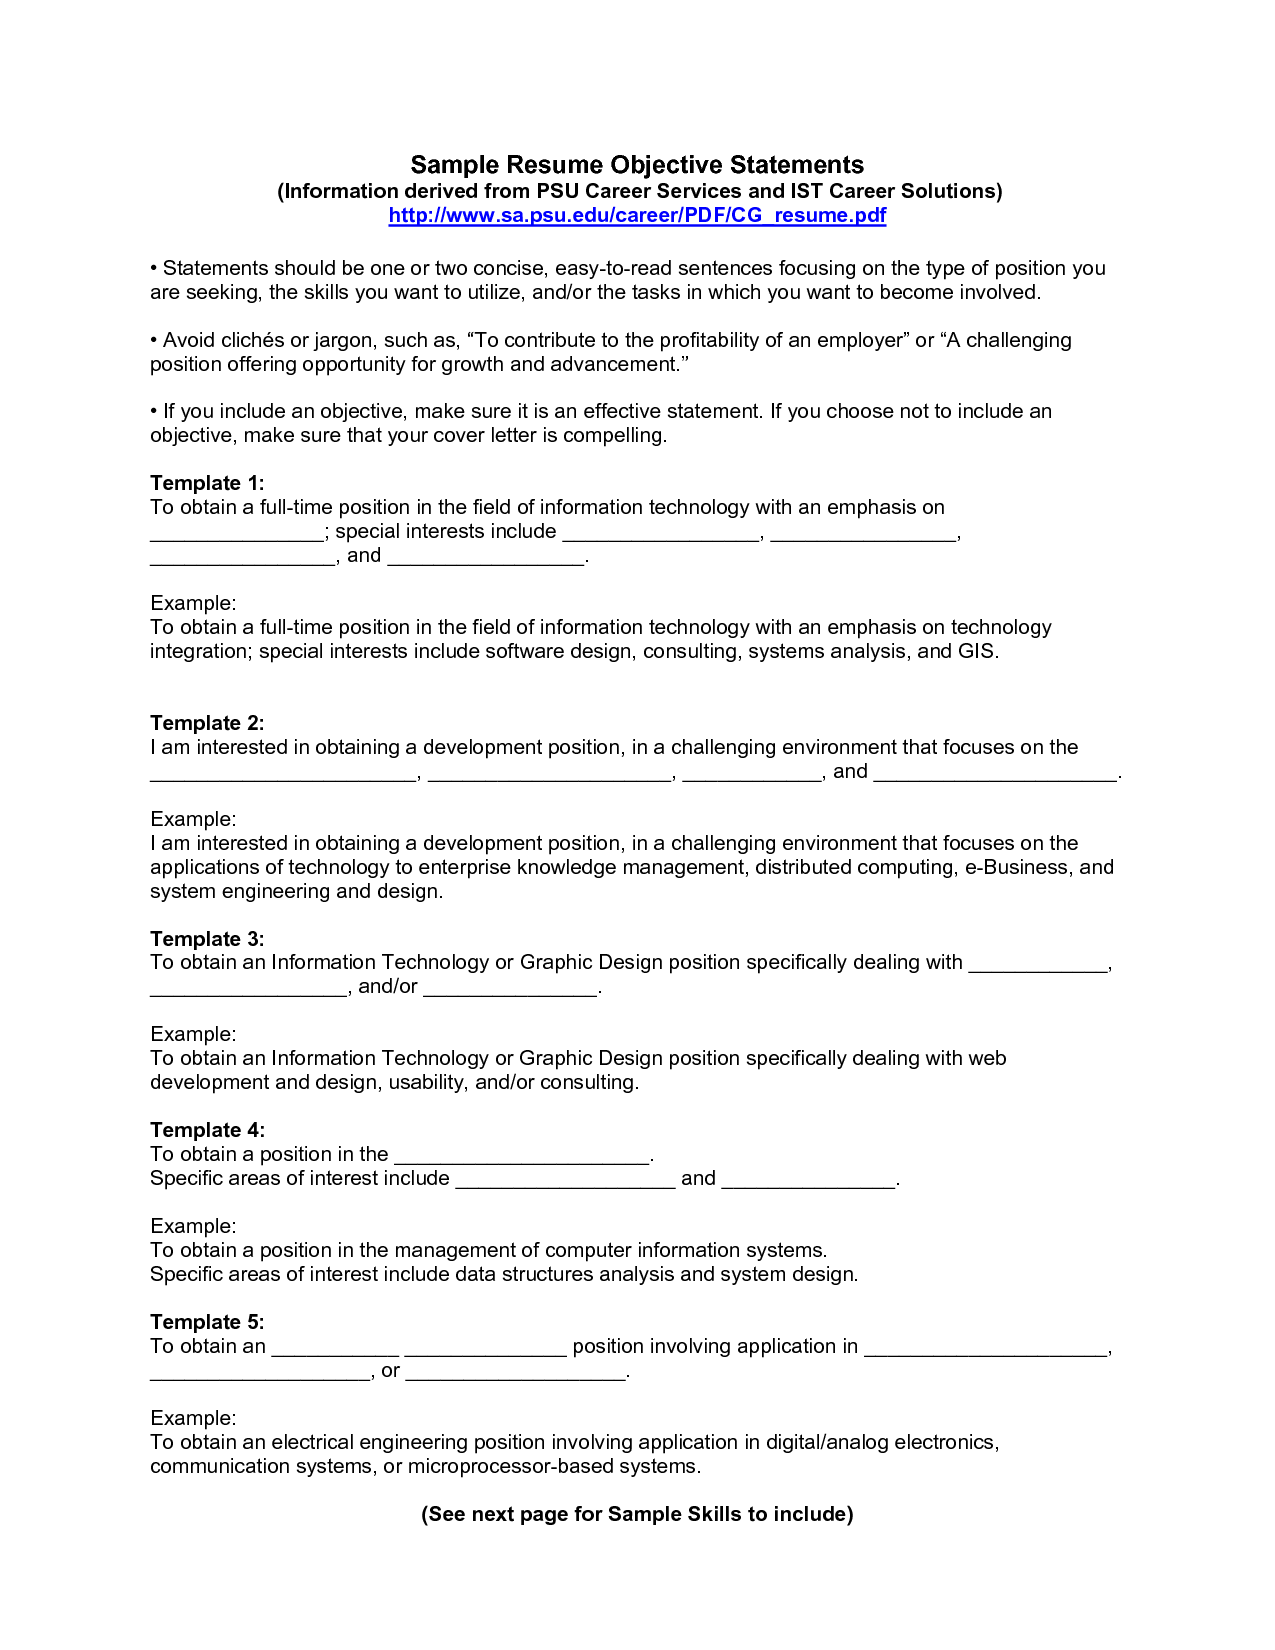 Resume Statement Examples Resume Objective Examplesprofessional Objective Resumes